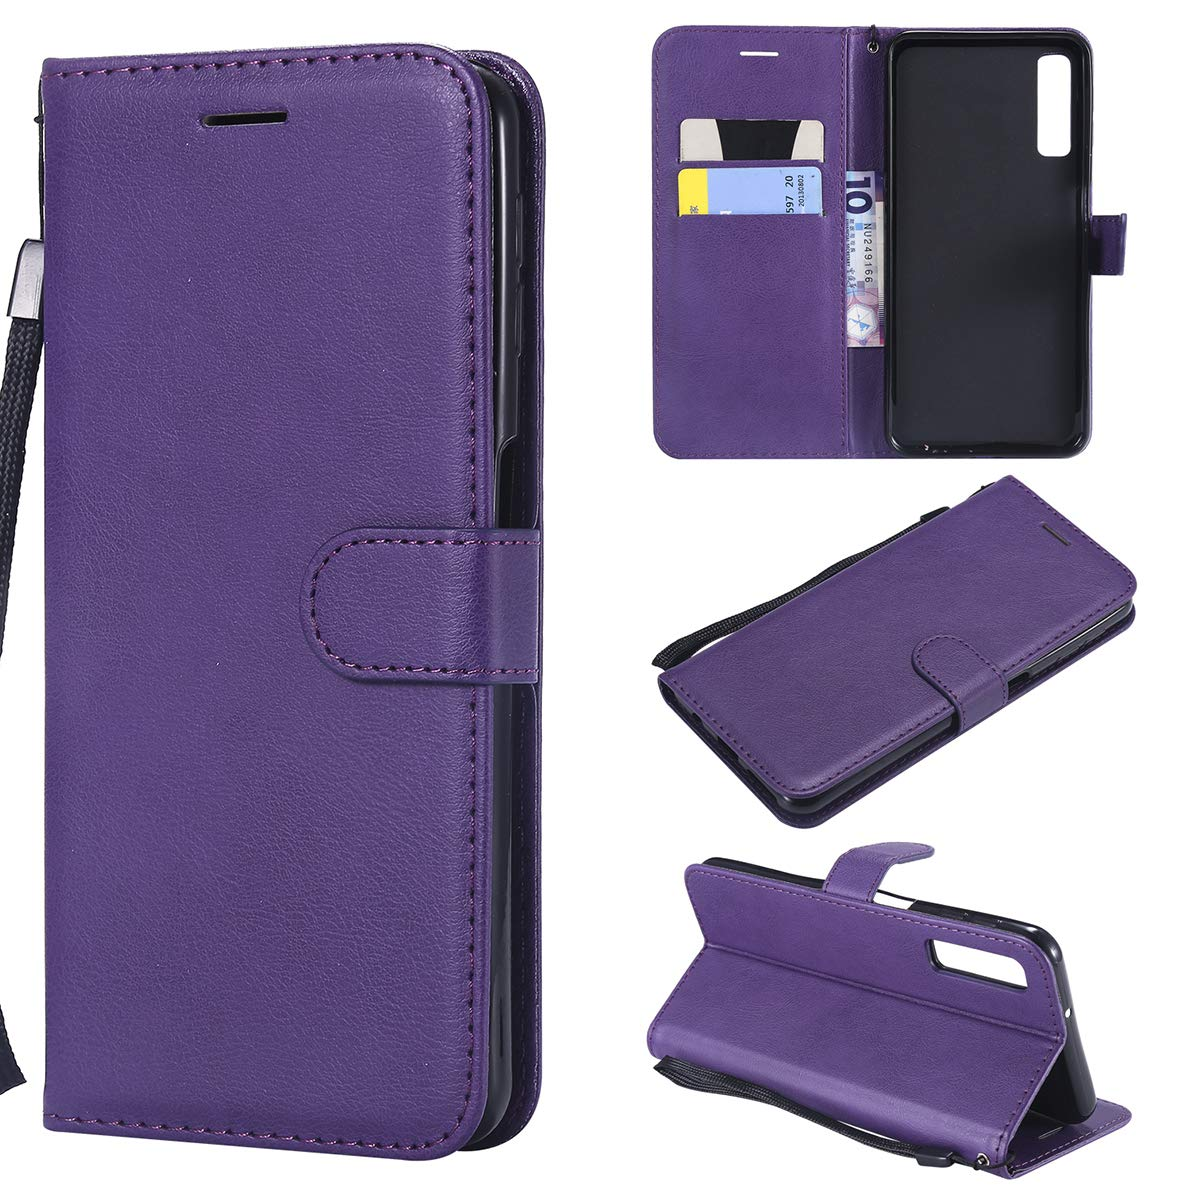 Samsung Galaxy A7 2018 Case, SHUYIT Solid Color Luxury PU Leather Case Book Case Flip Wallet Case Cover for Samsung Galaxy A7 2018 A750 Shell with Card Slots Stand Magnetic Closure